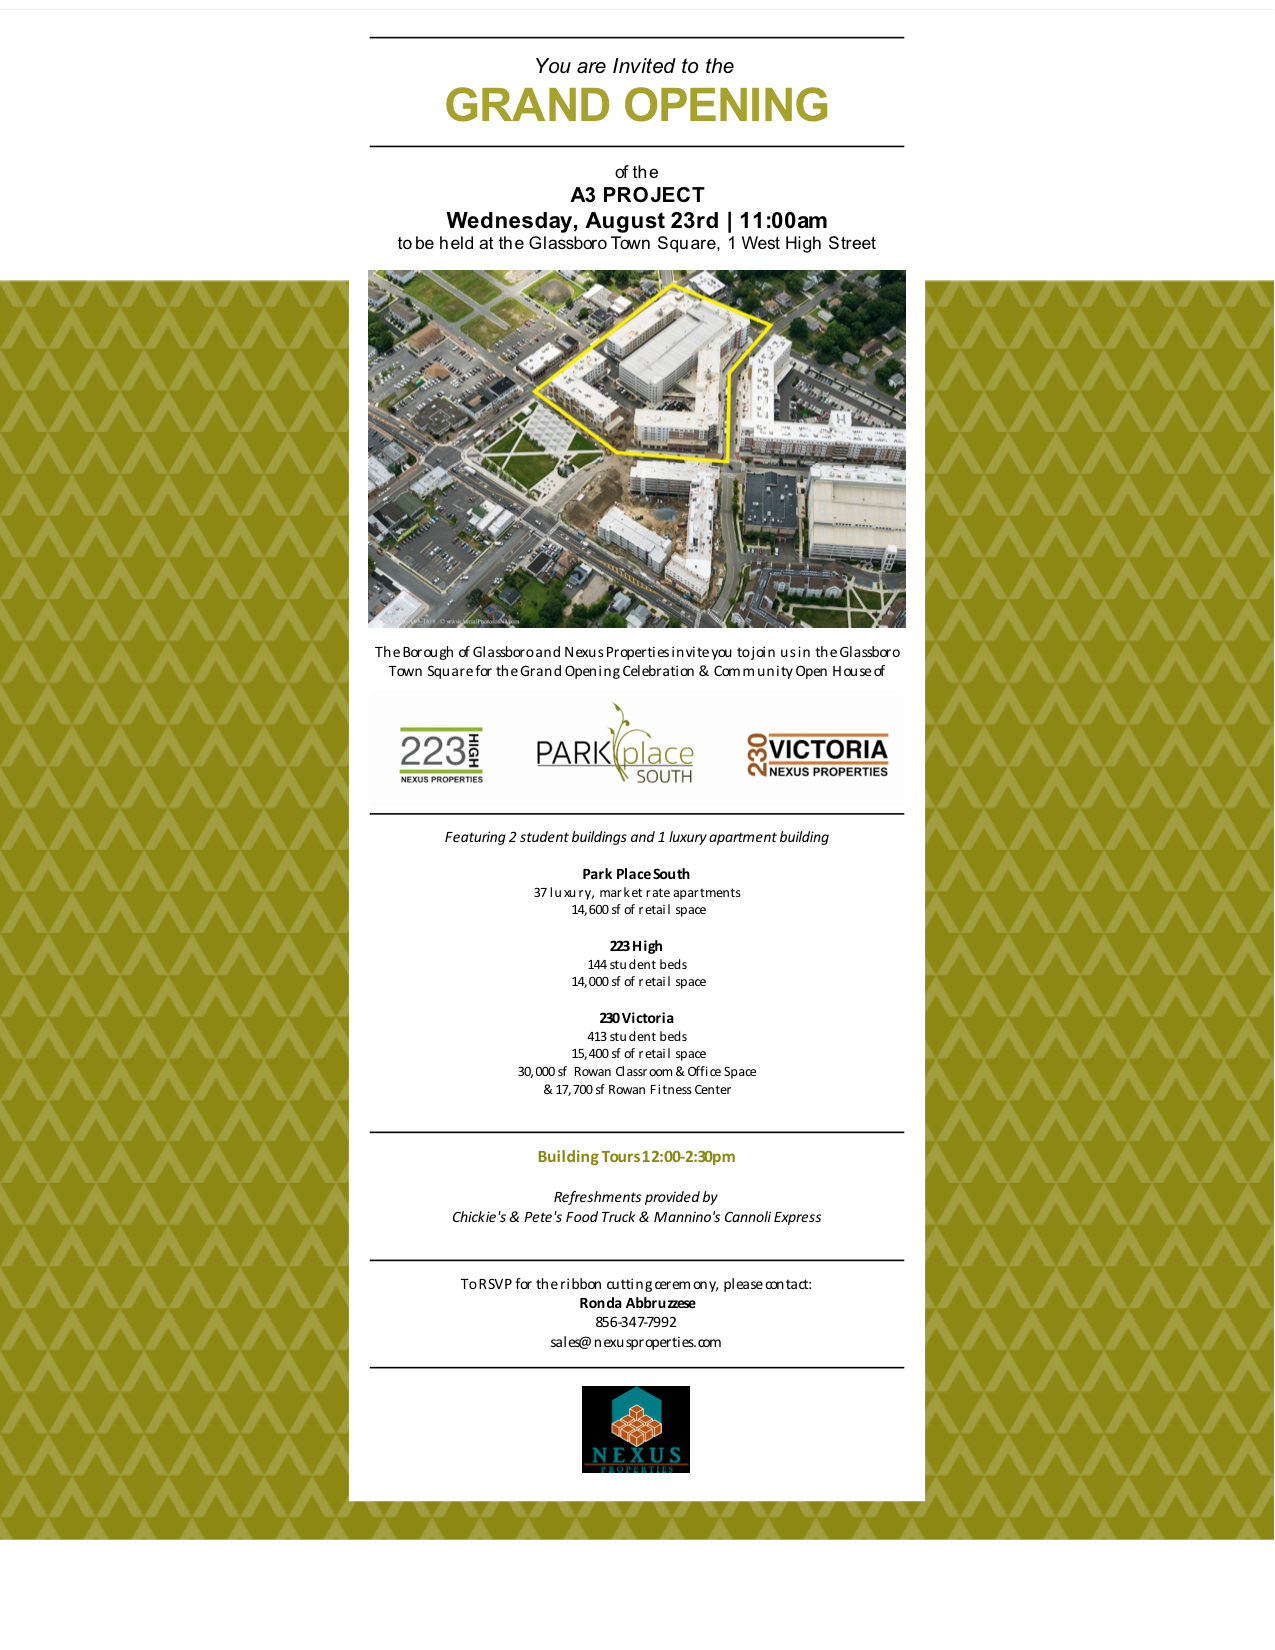 You are Invited to the GRAND OPENING of the A3 PROJECT